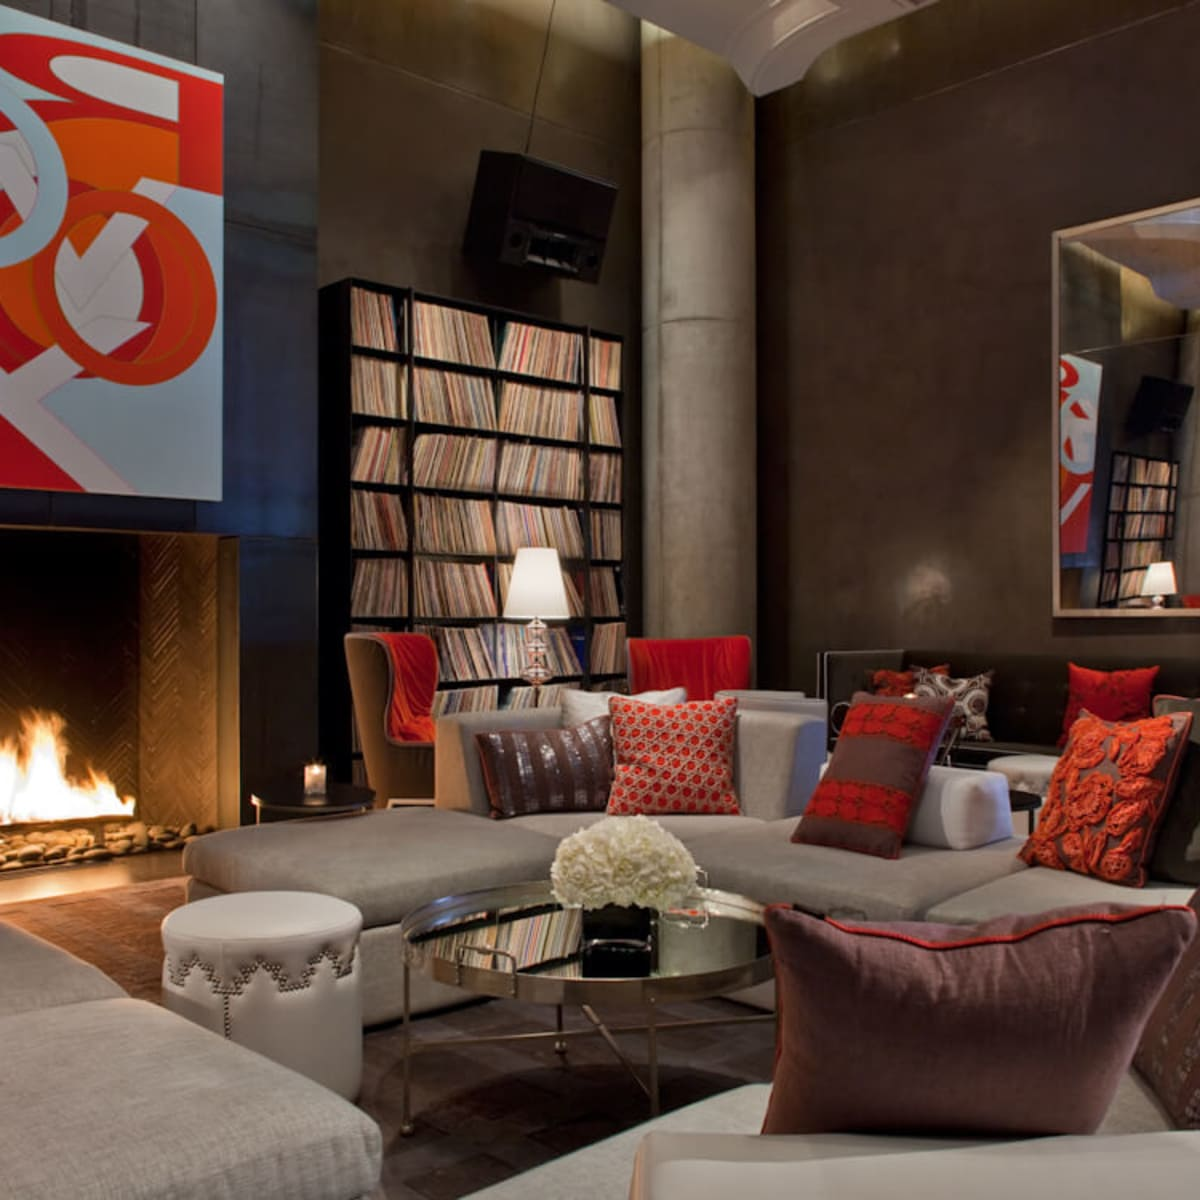 Austin Photo Set: News_Caitlin_W Hotel_Dec 2011_living room